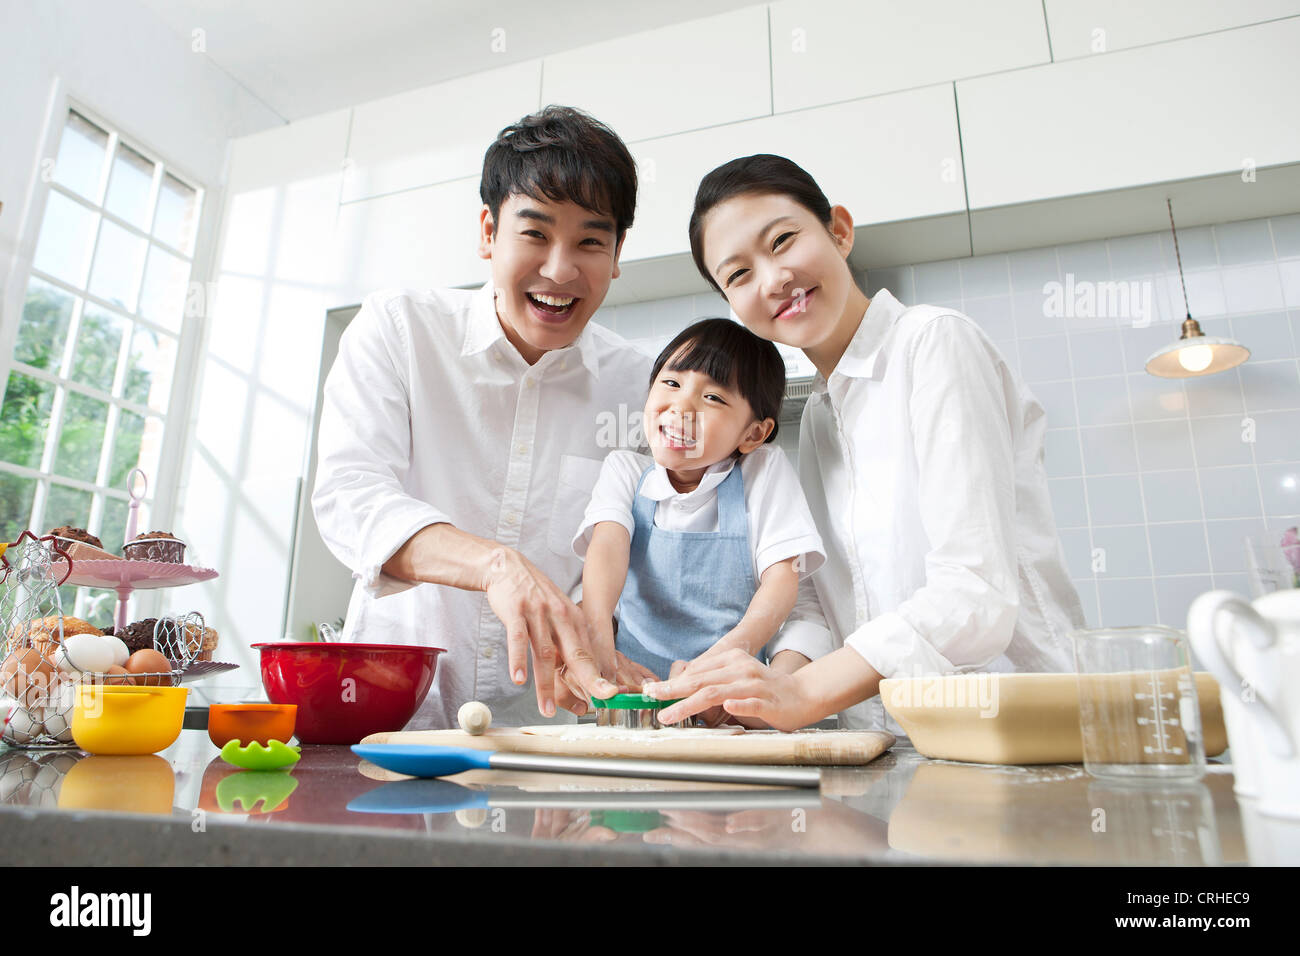 Happy family cooking in the kitchen Stock Photo: 48942329 - Alamy